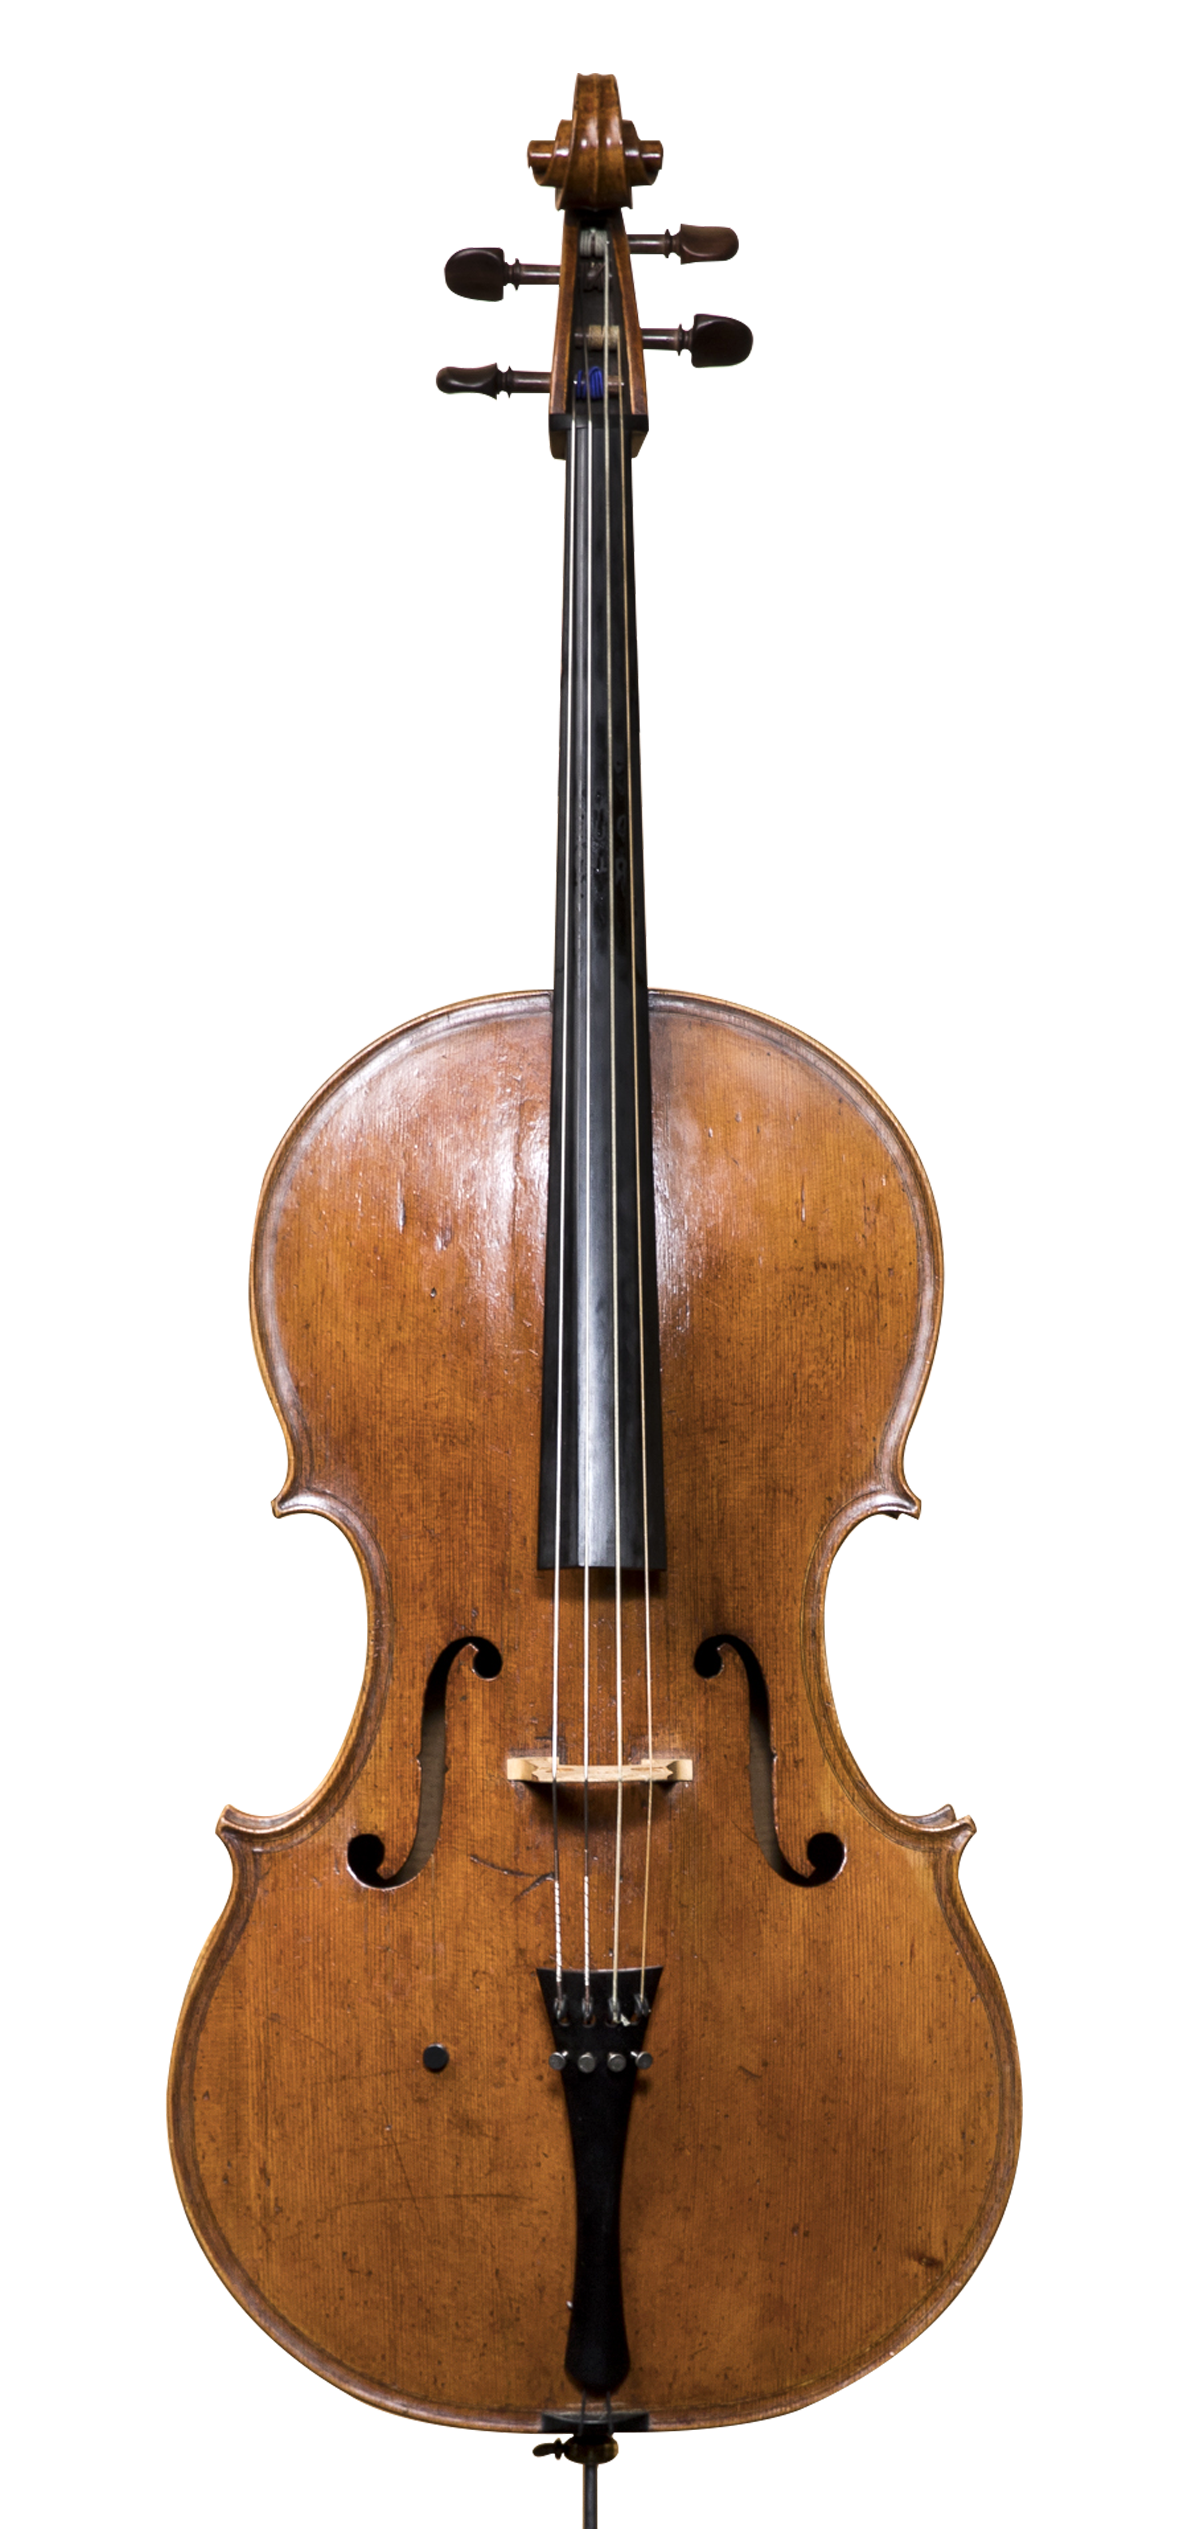 vector freeuse stock Our instruments australian chamber. Cello clipart chinese american.